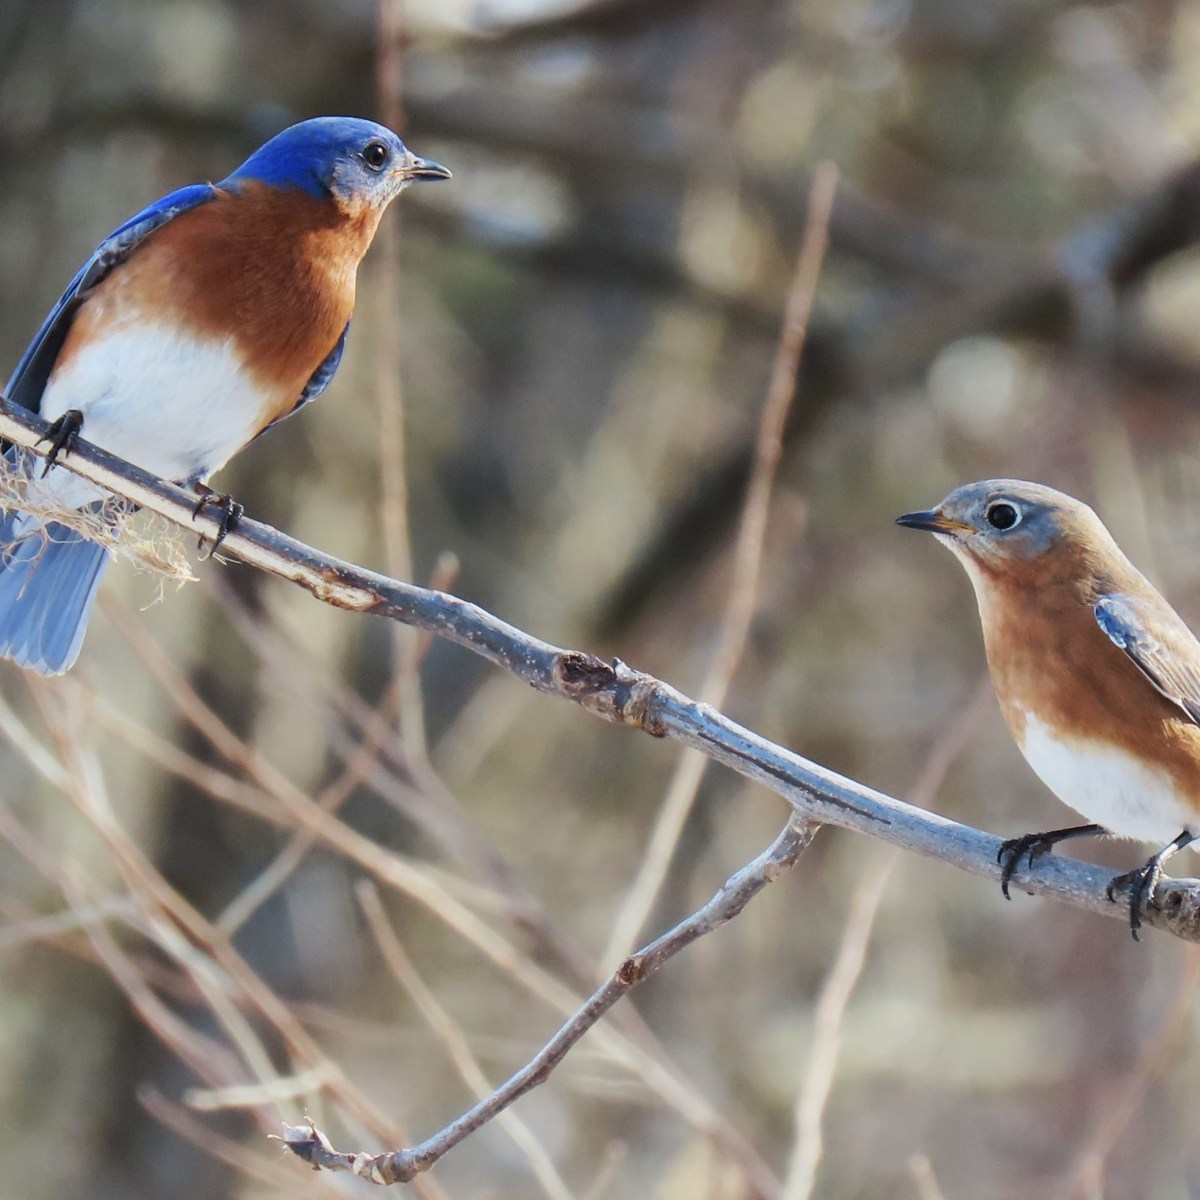 Two Eastern Bluebirds perched on a tree branch on a sunny day